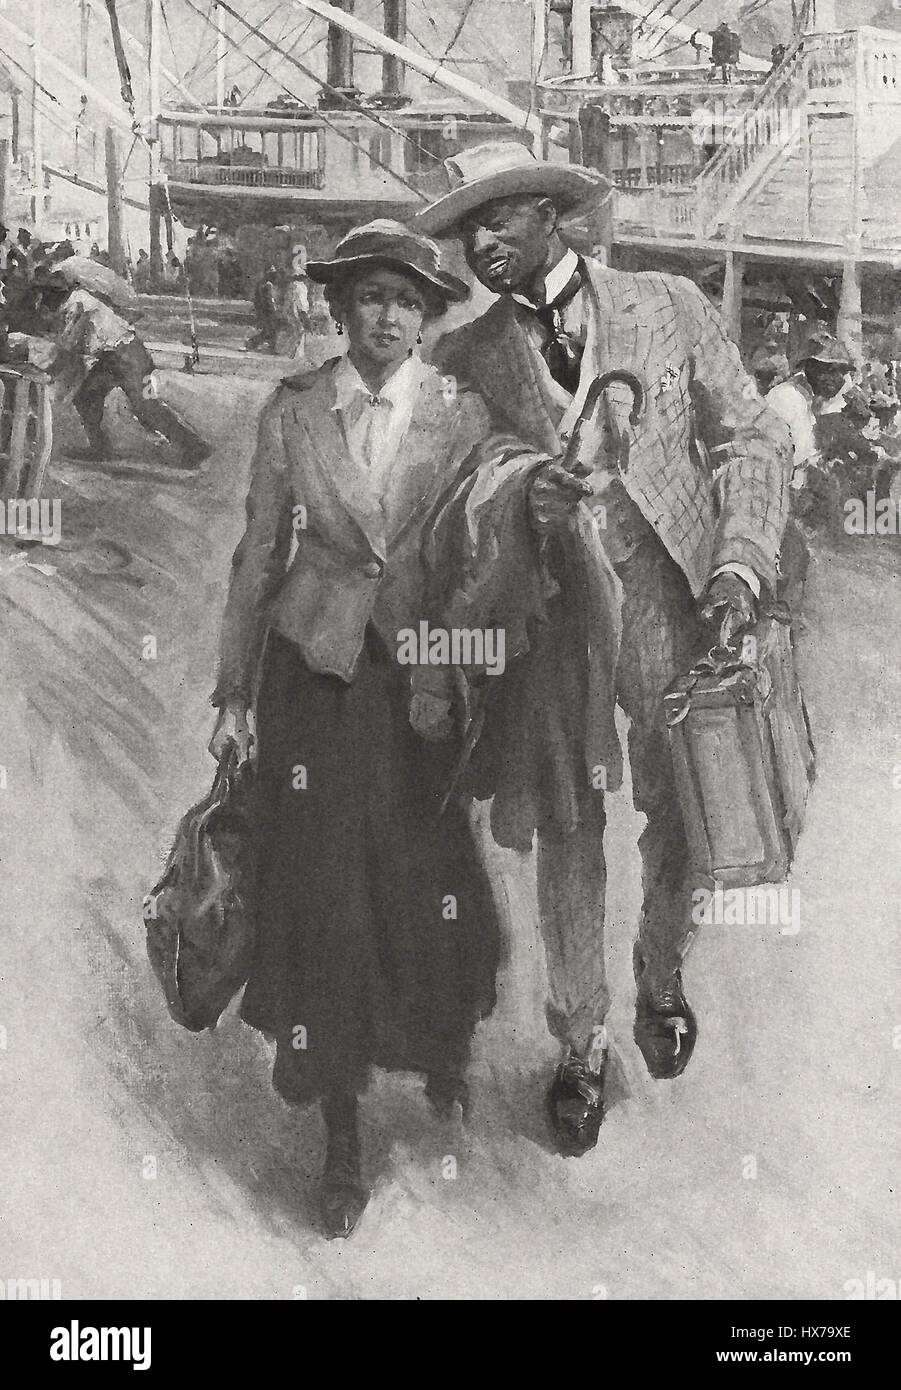 Well Dressed African American Couple departing a Riverboat, circa 1910 - Stock Image